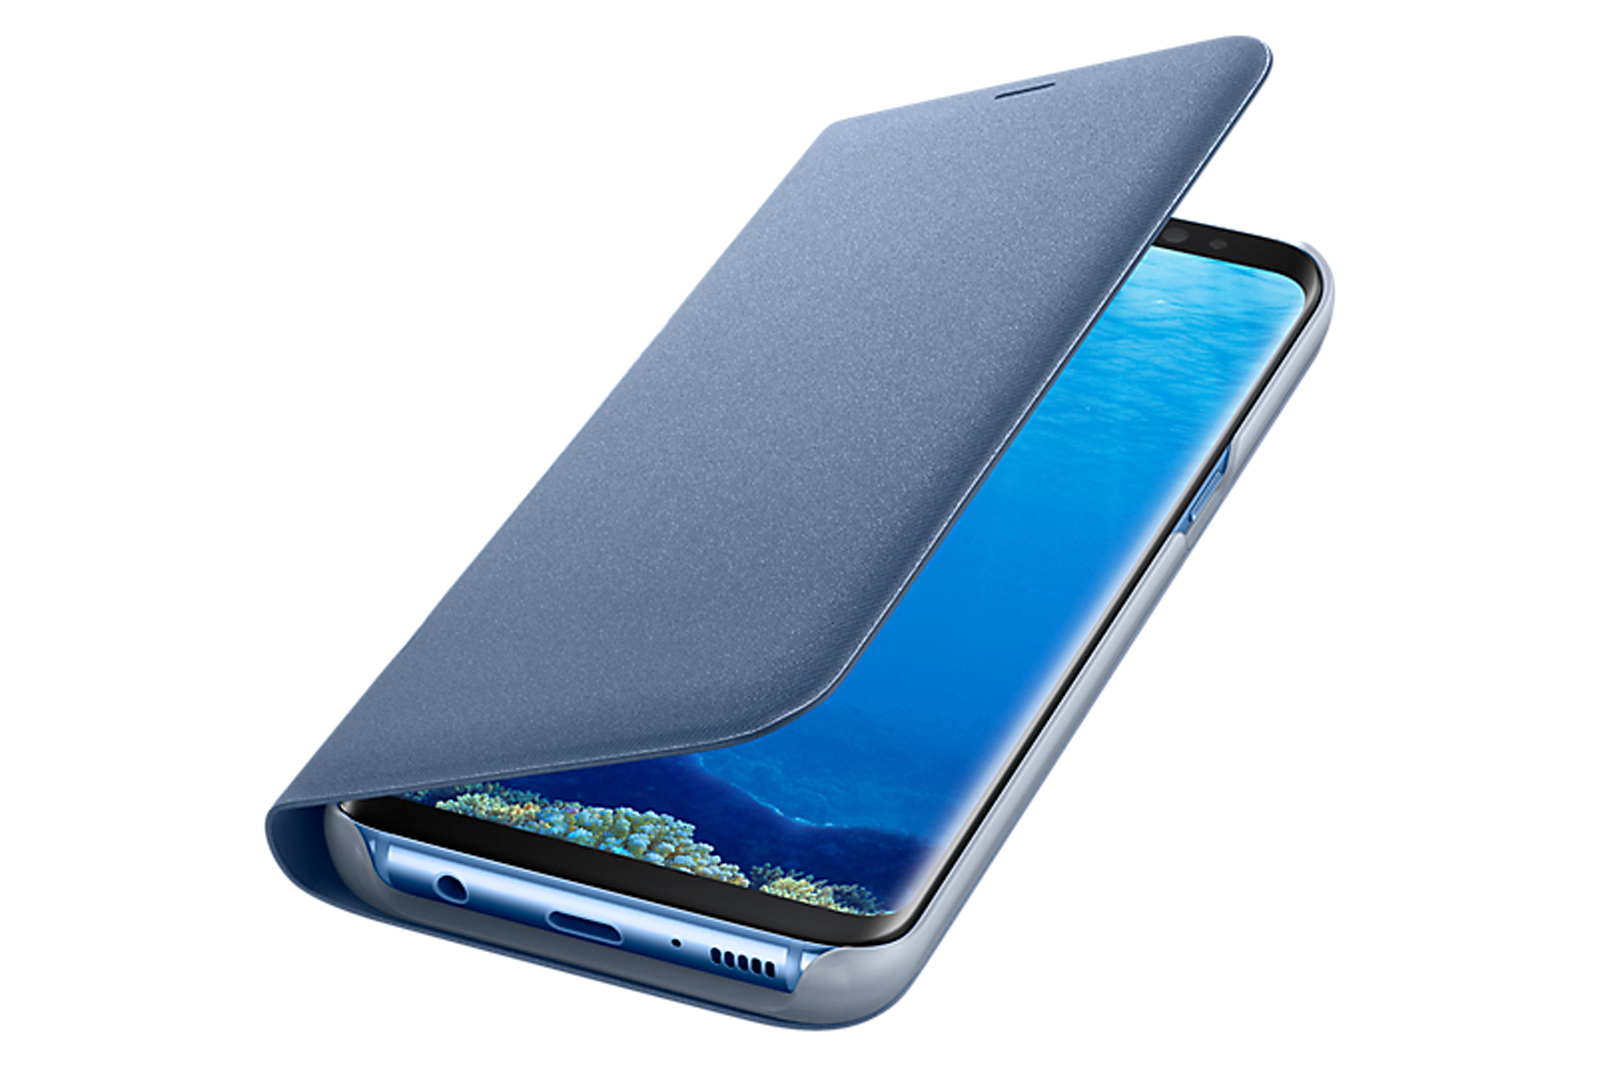 official samsung galaxy s8 plus led flip wallet cover blue through this